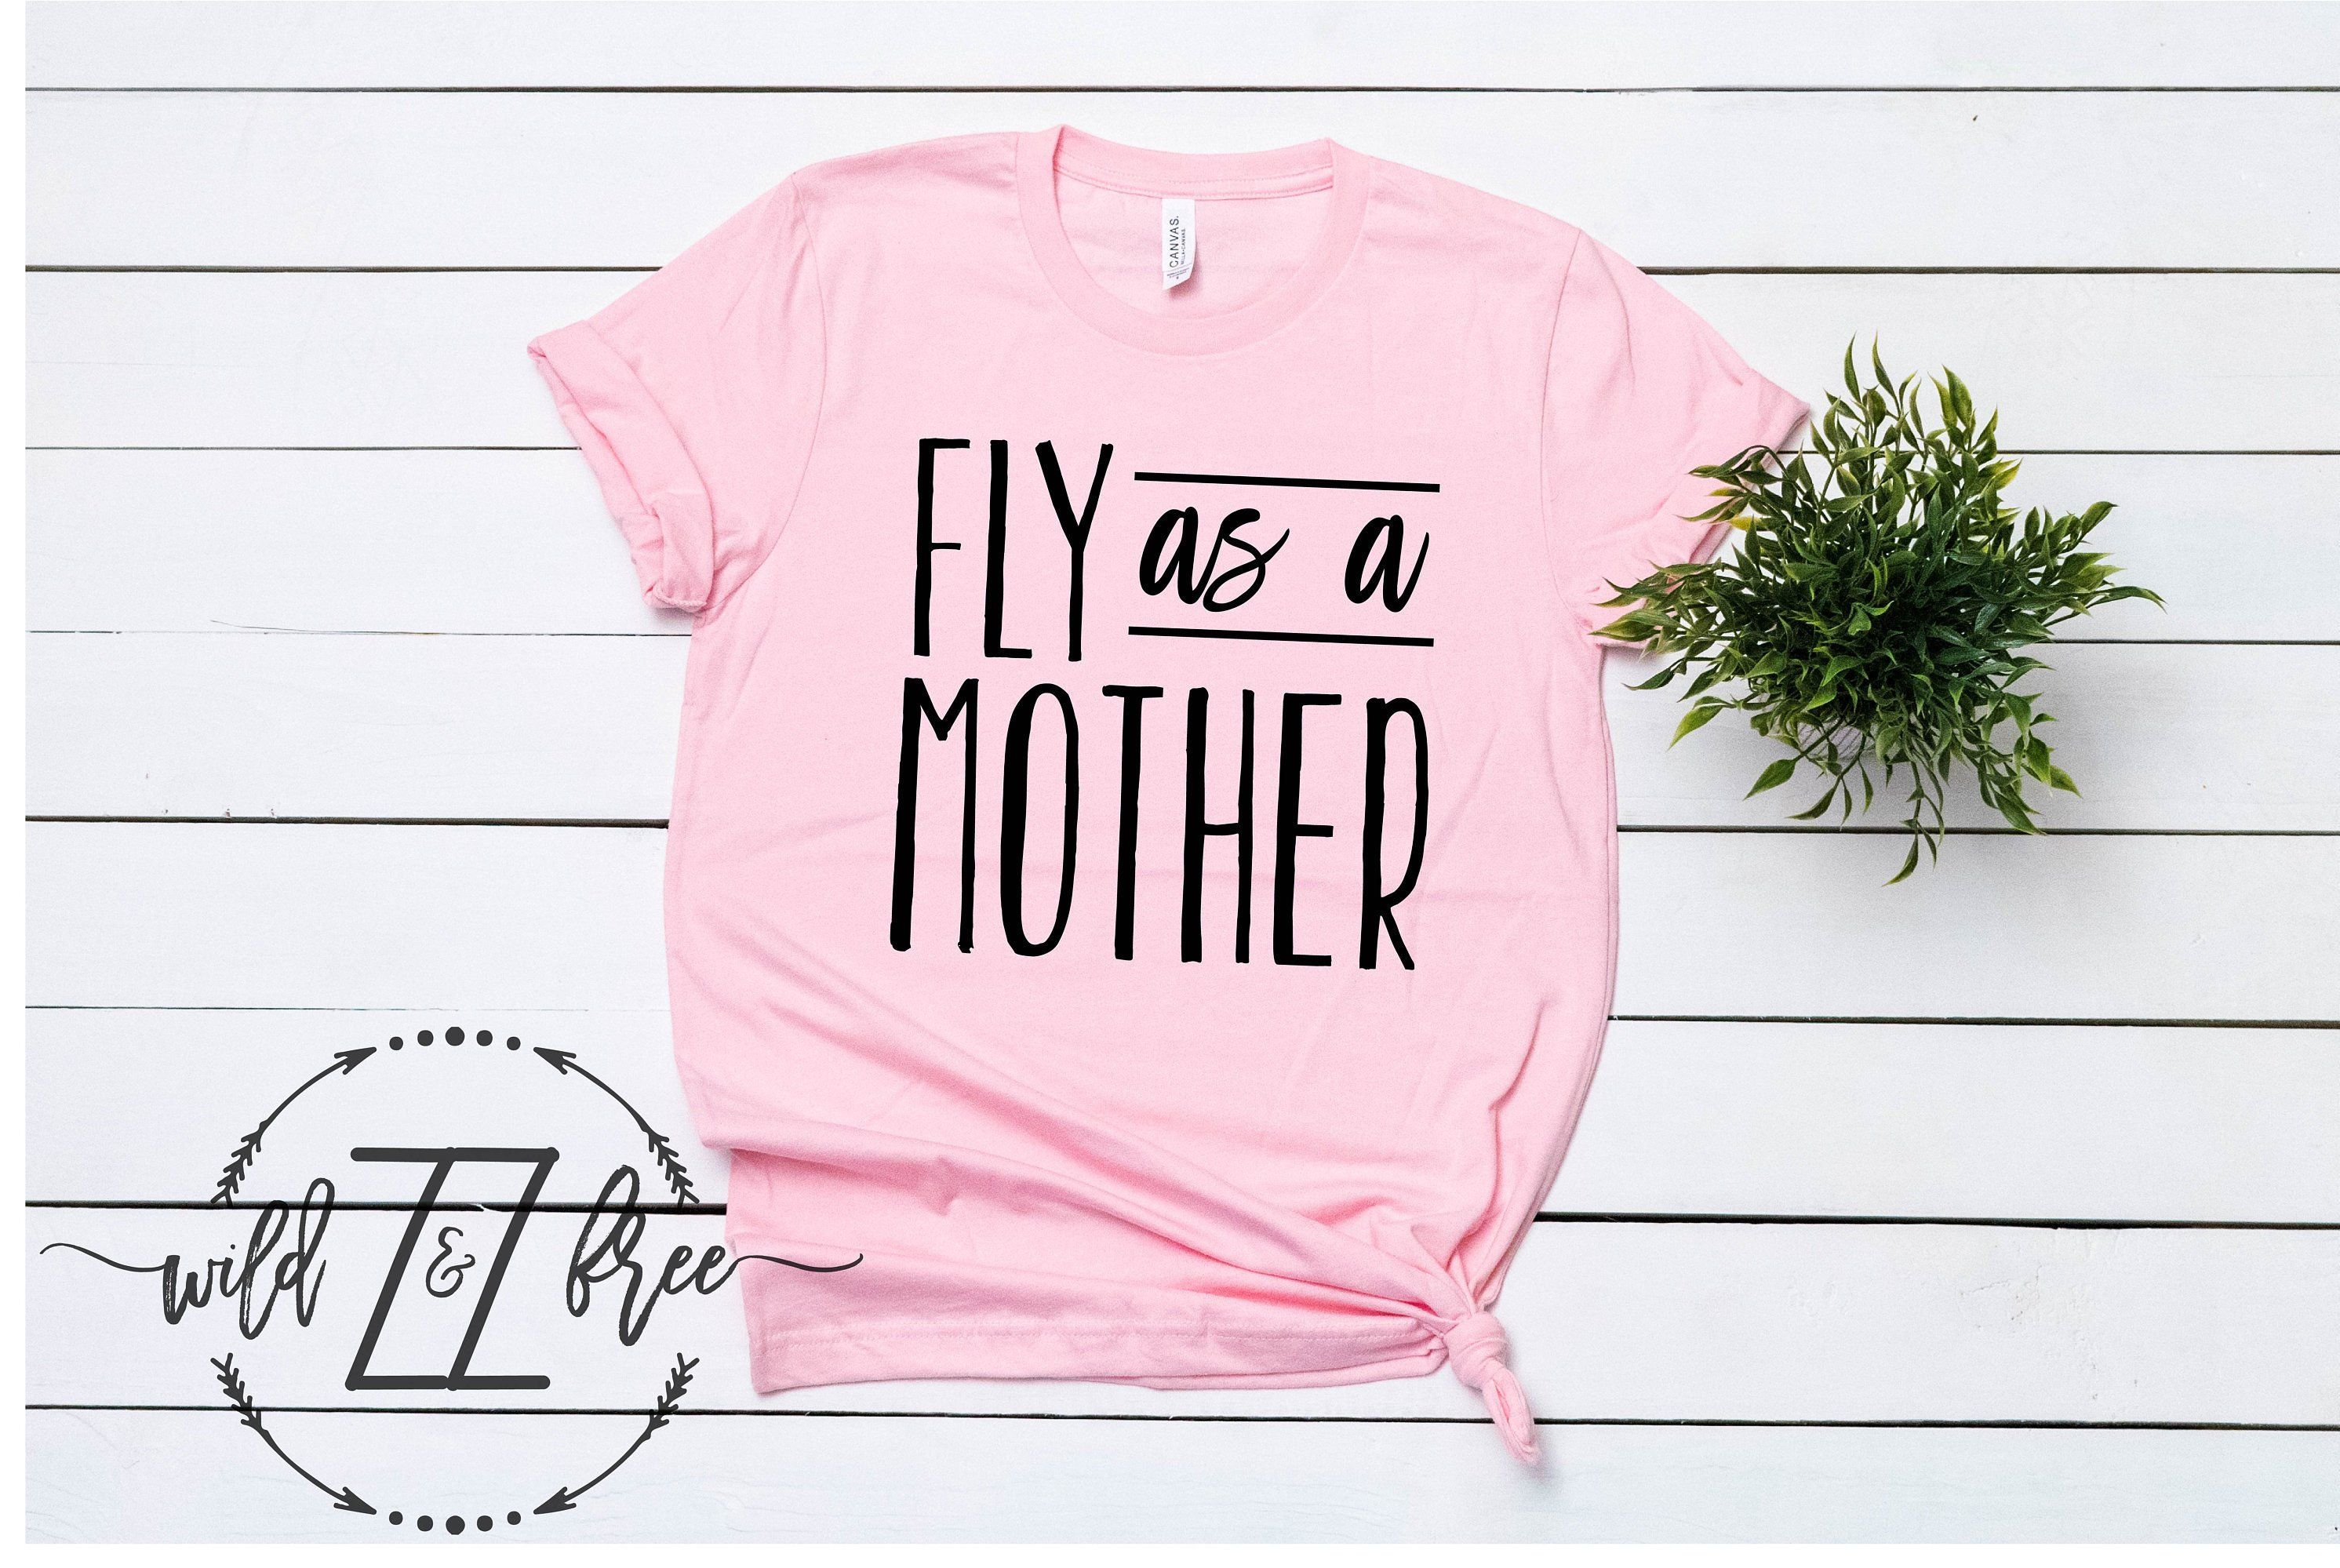 Fly As A Mother Funny T Shirts Funny Sayings Unisex Women S T Shirt Shirts For Women Mothers Day Mother S D T Shirts For Women Mom Wife Shirt Wife Shirt